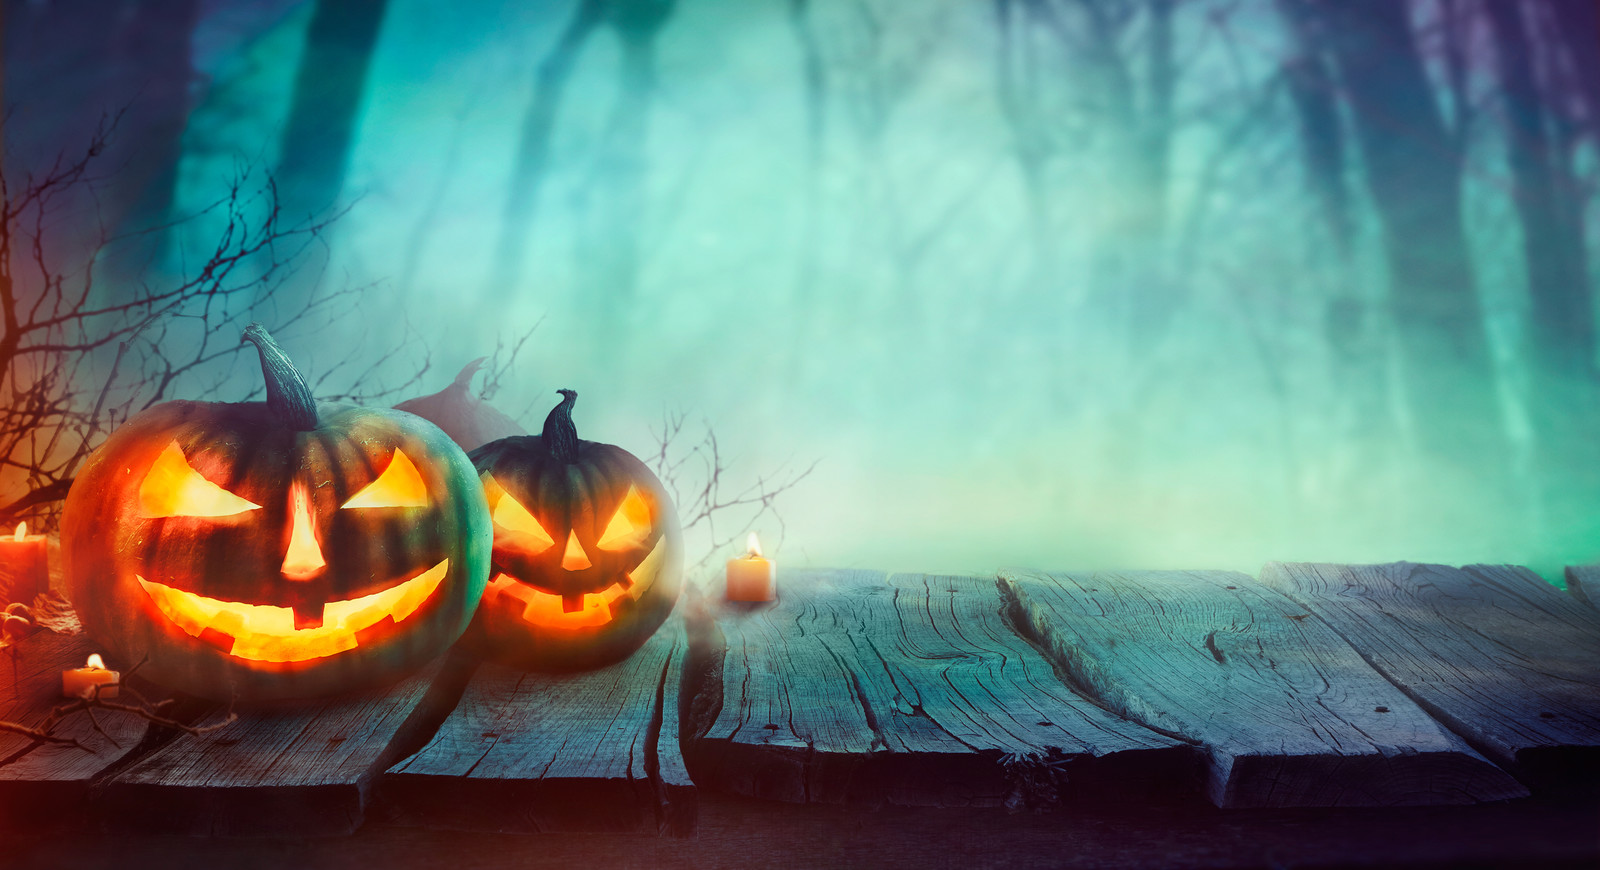 Hallowe'en scene business fears